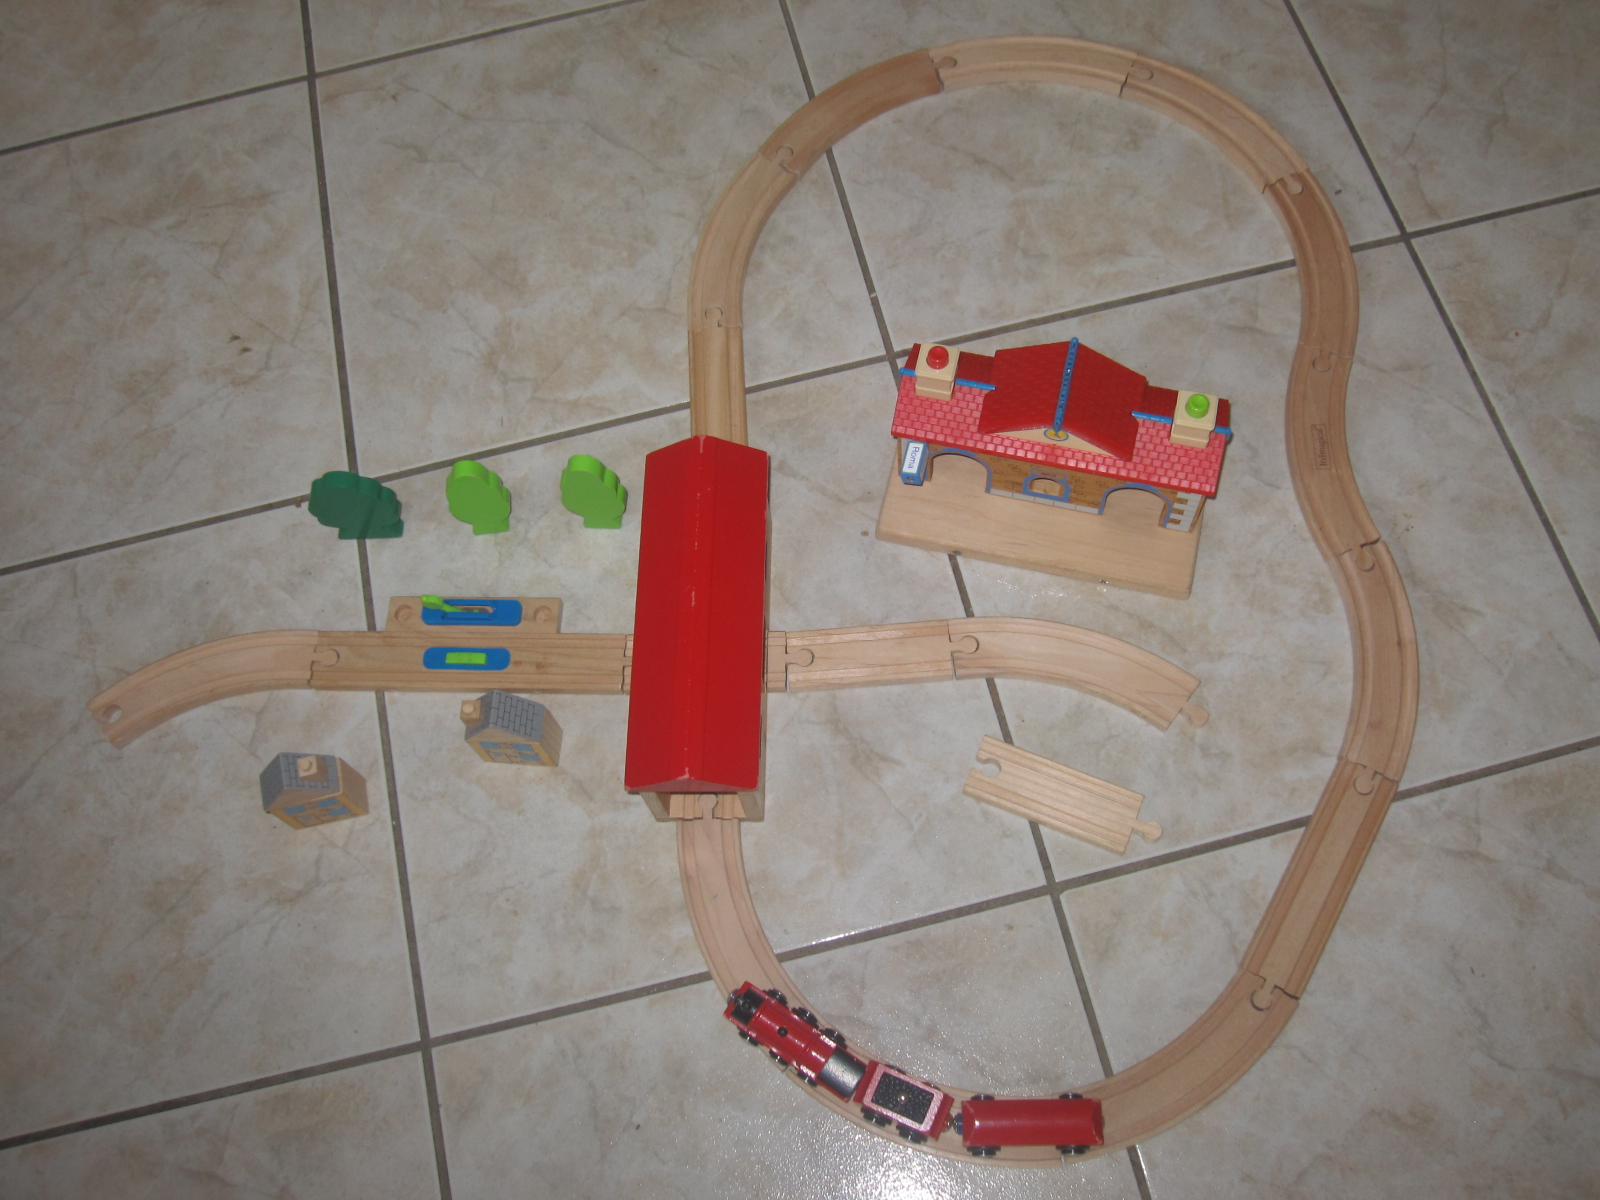 circuit de train en bois it s imagical imaginarium aukazoo. Black Bedroom Furniture Sets. Home Design Ideas